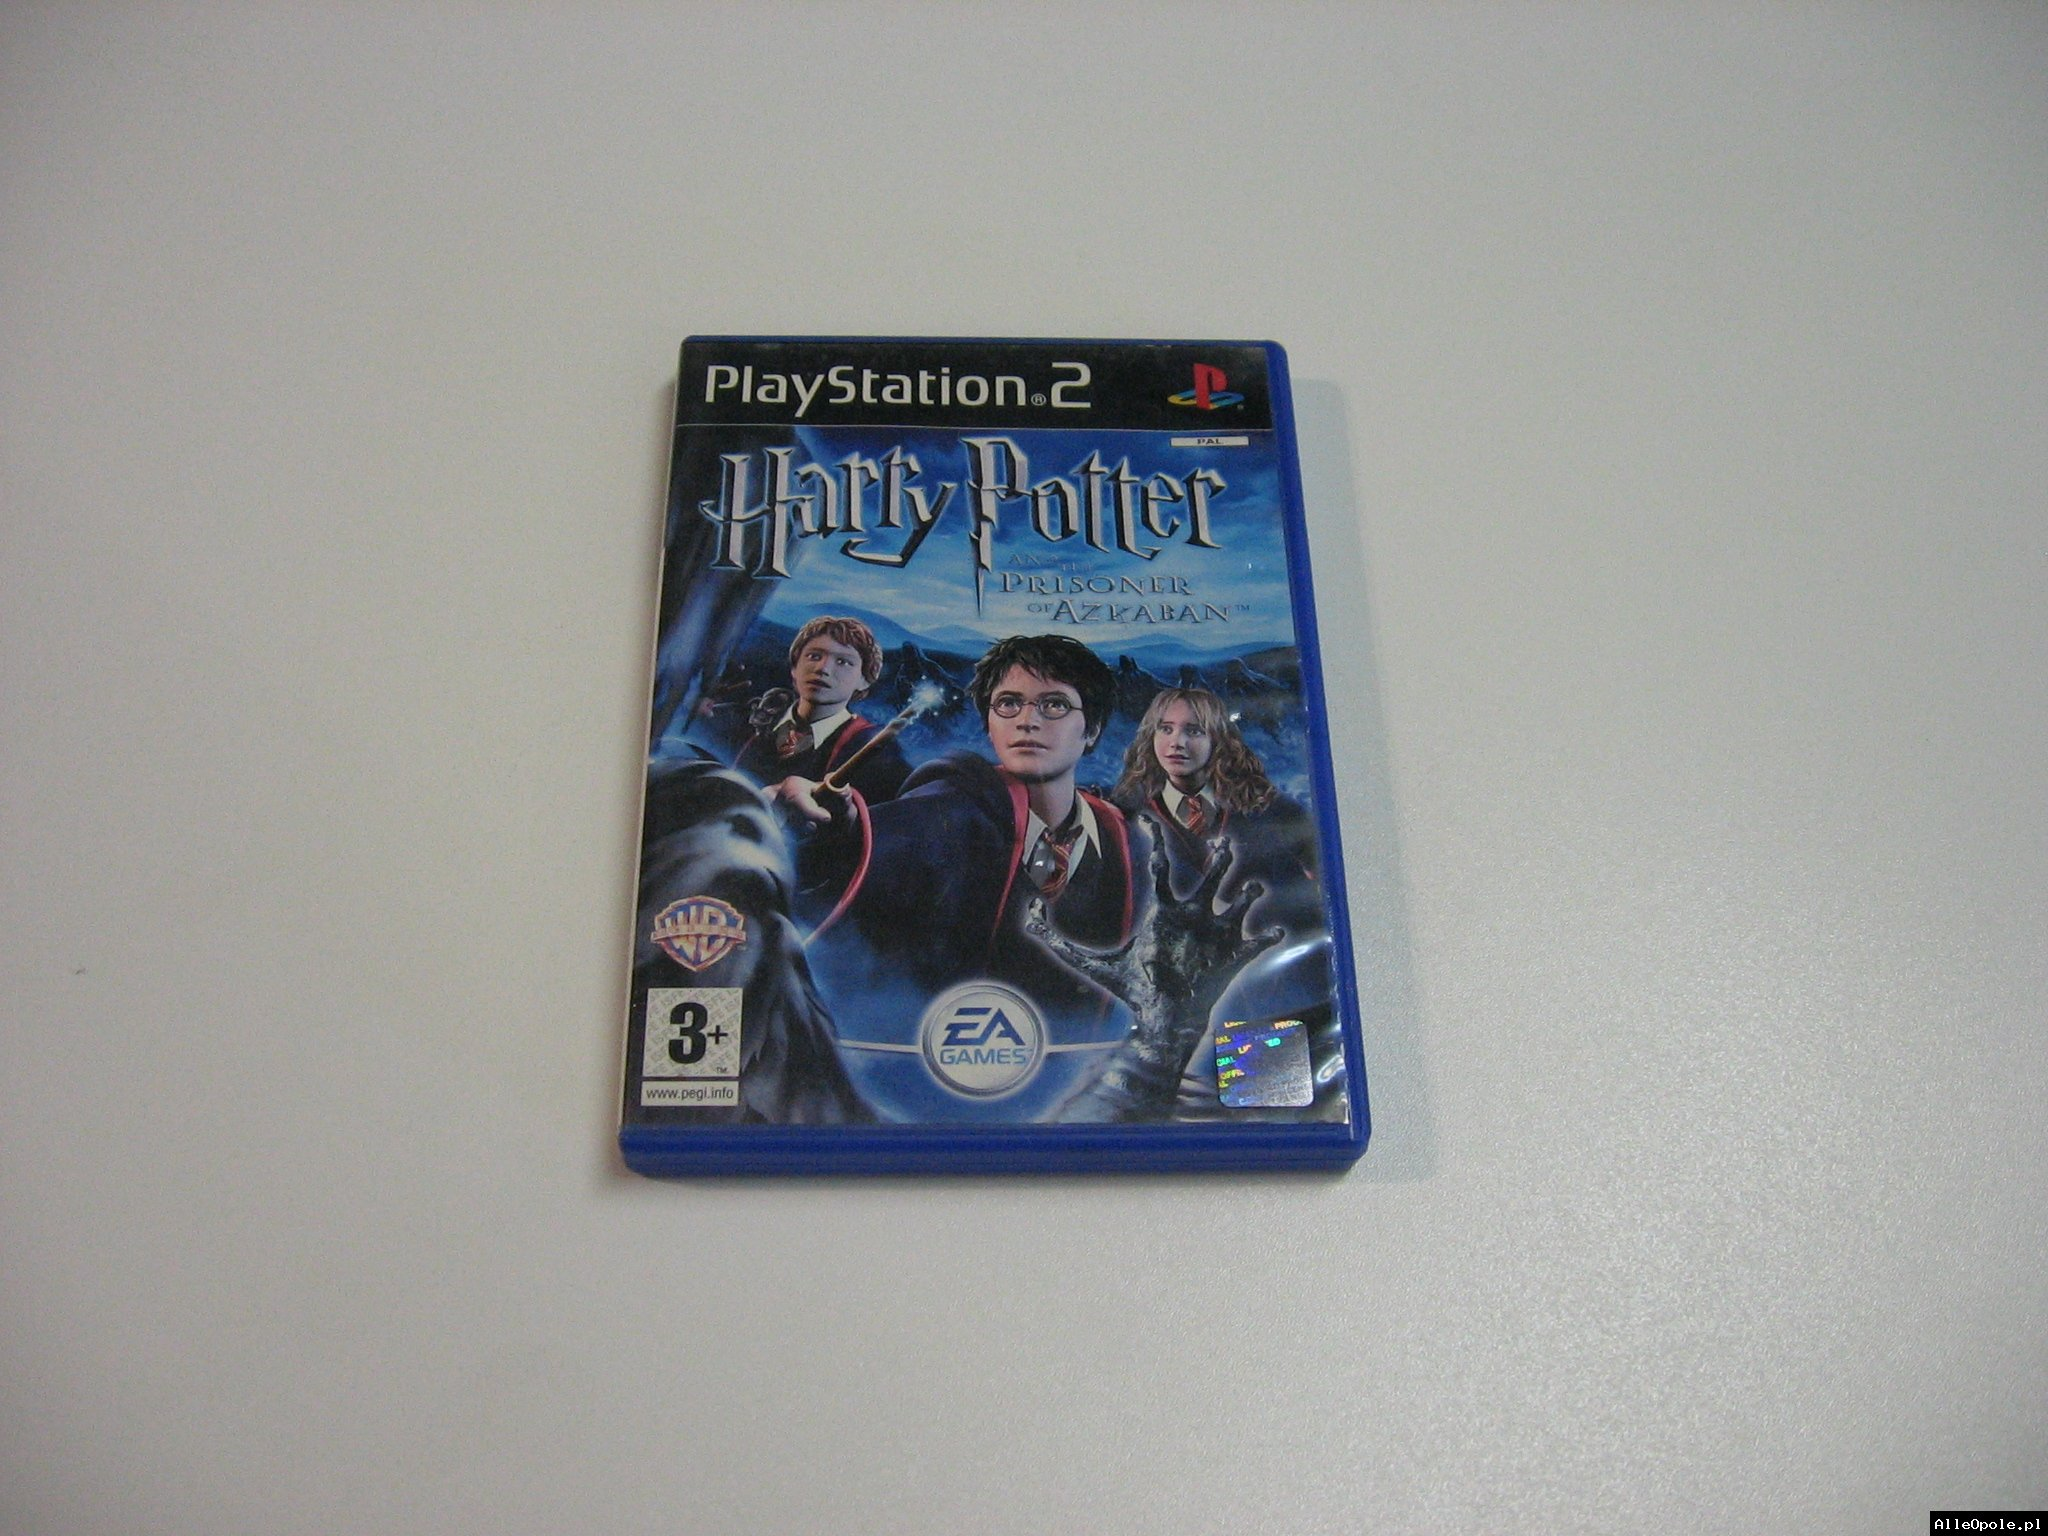 HARRY POTTER AND THE PRISONER OF AZKABAN - GRA Ps2 - Opole 0611